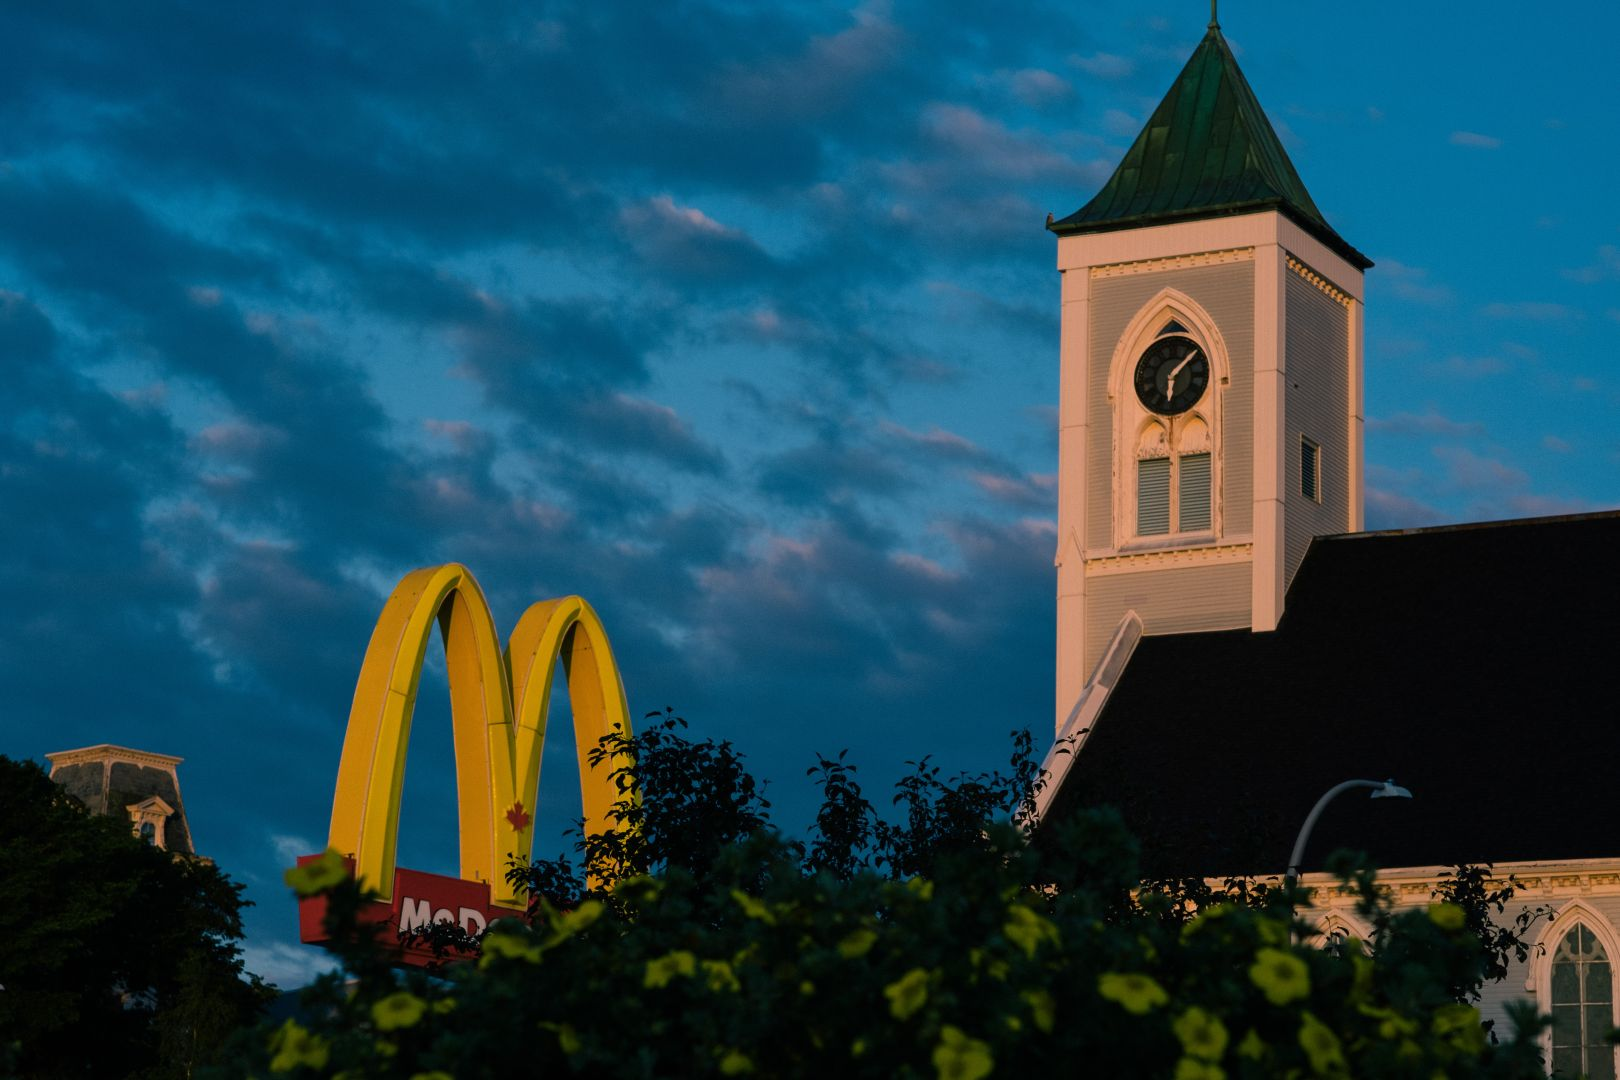 A photo depicting Mcdonalds Sign and Church Morning Light